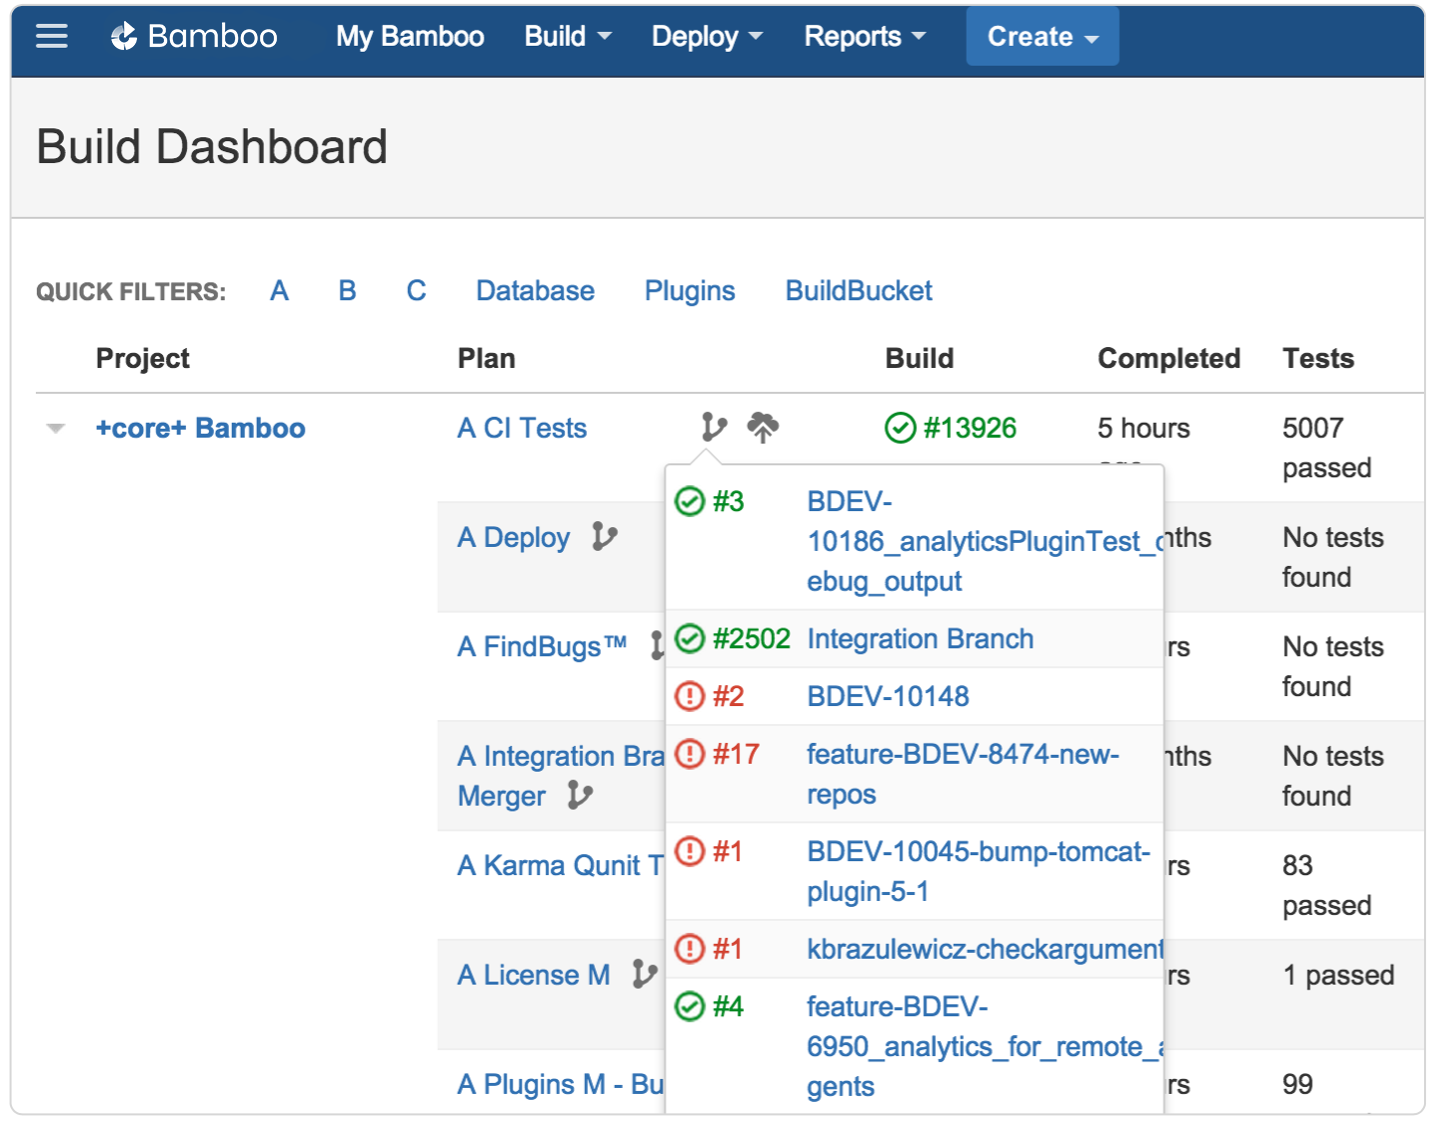 Bamboo build dashboard plan branches screenshot